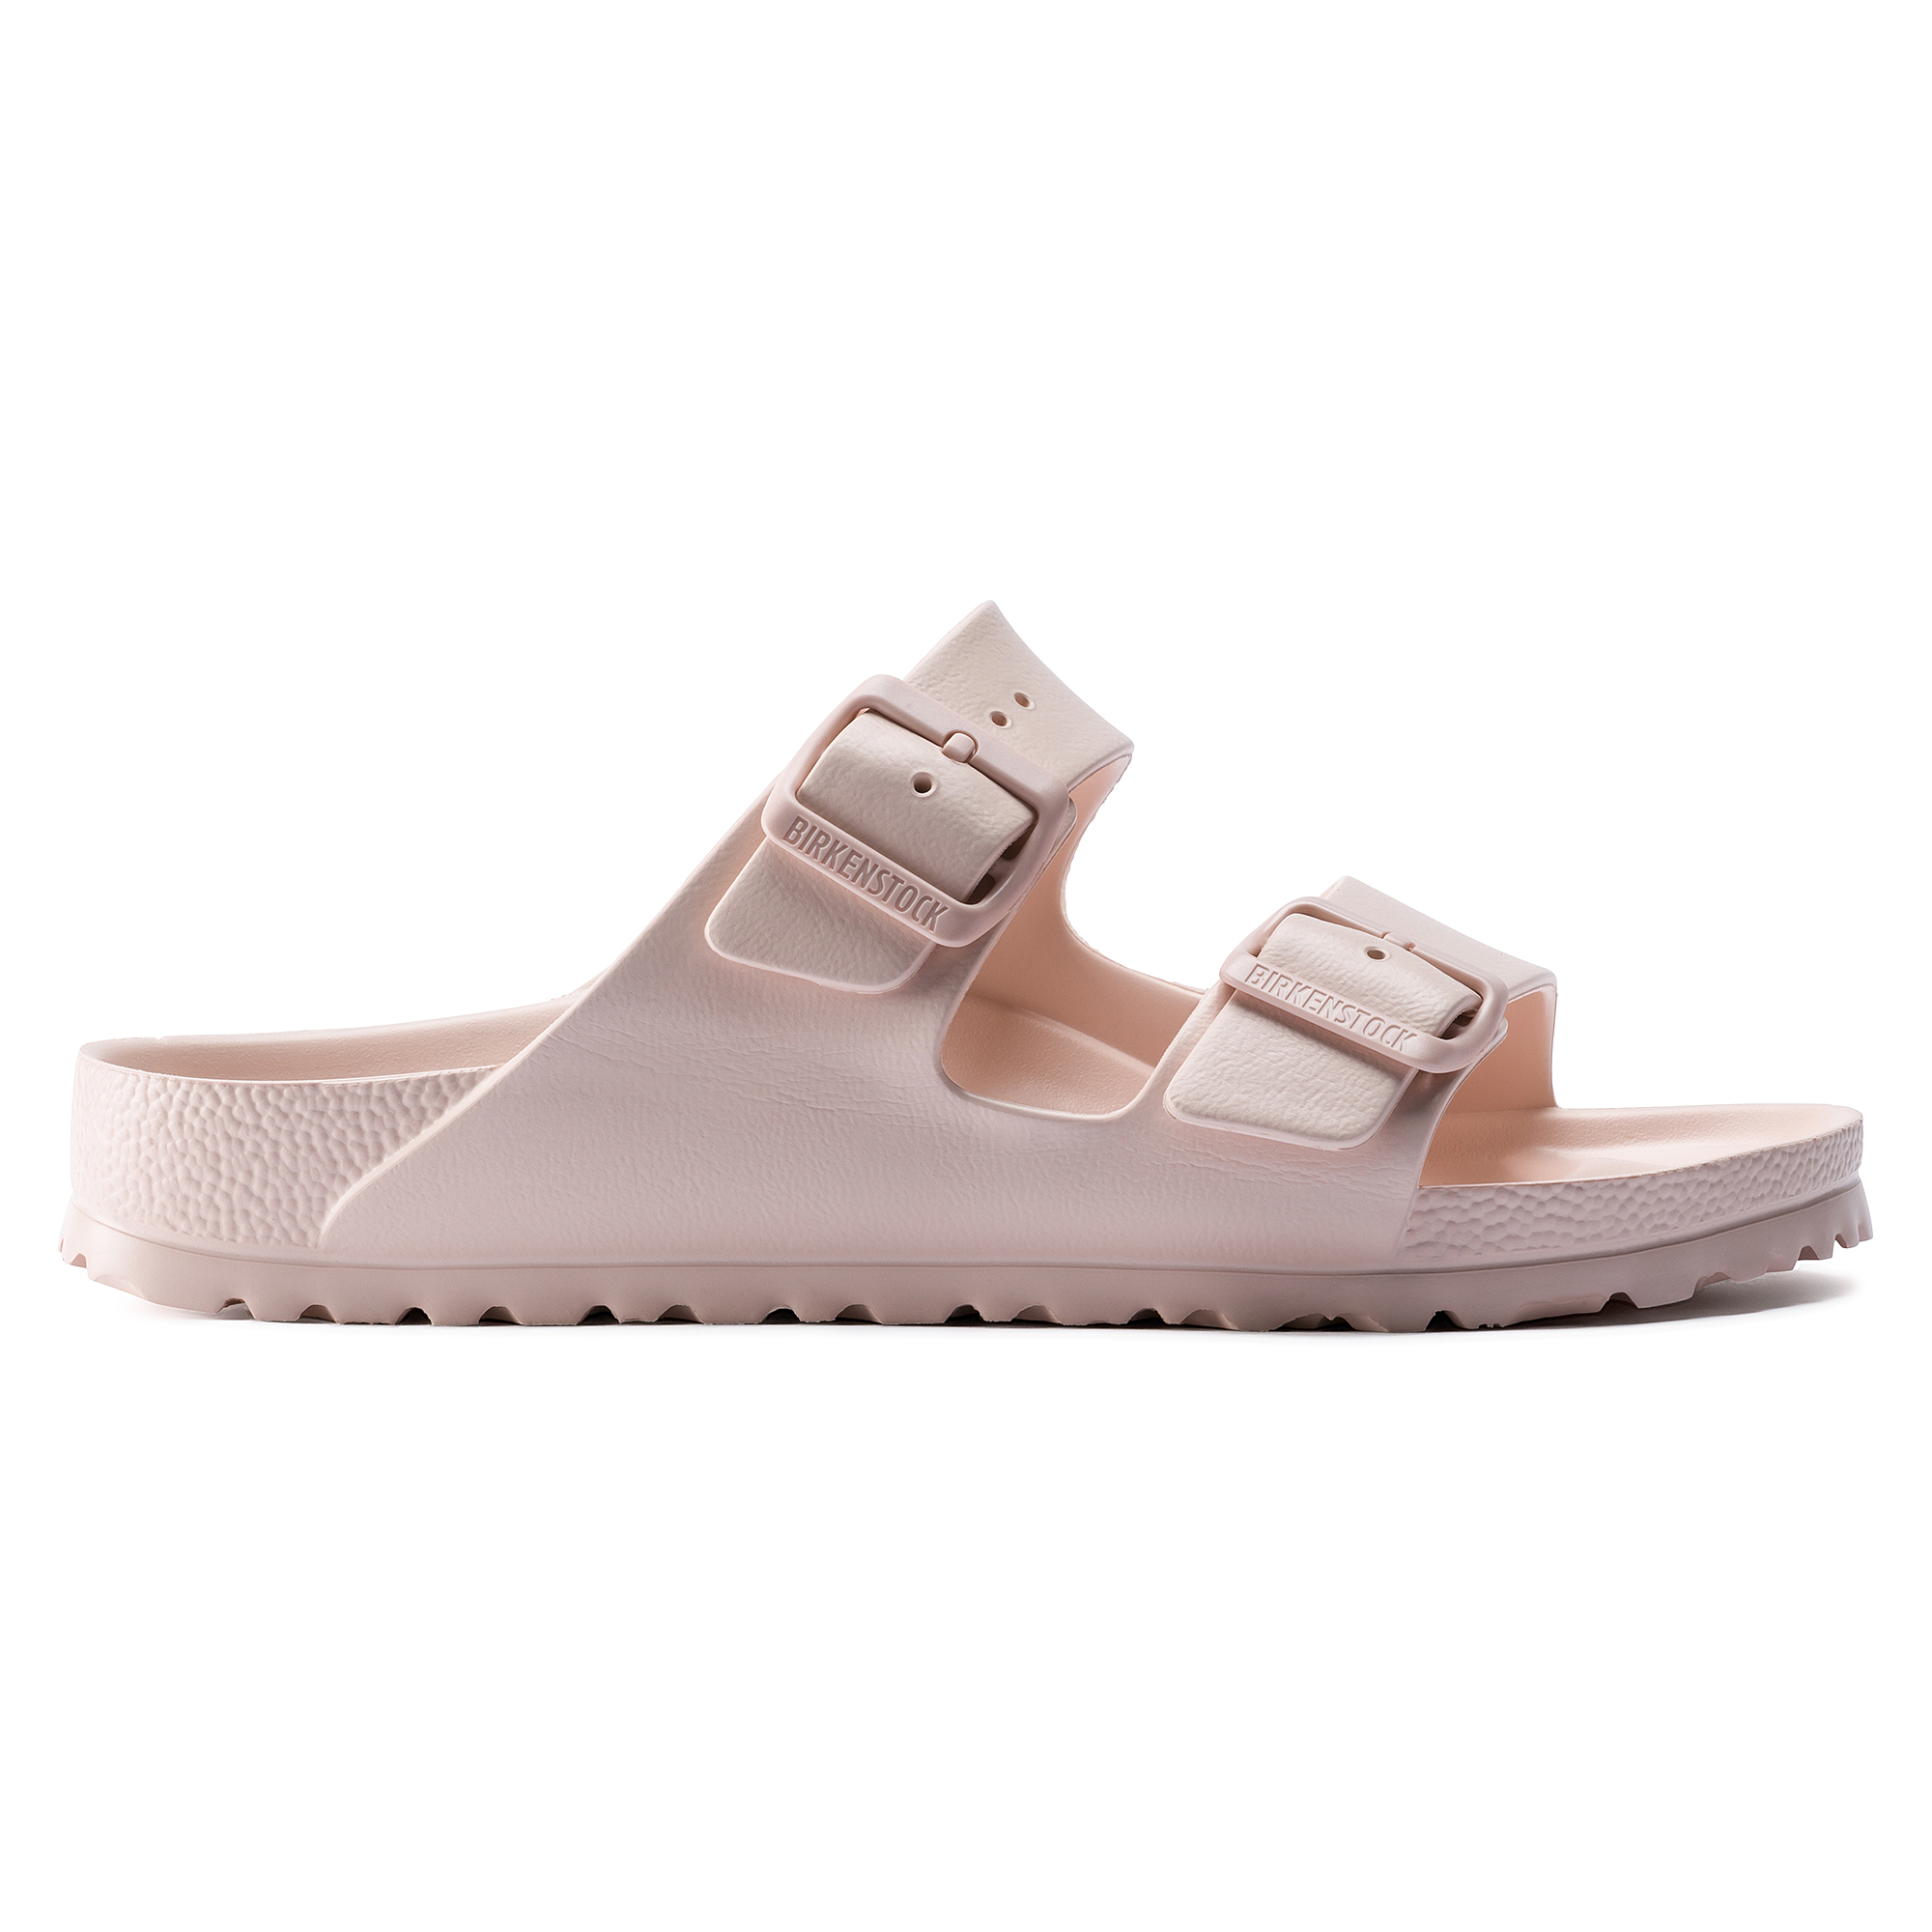 Arizona EVA Rose | shop online at BIRKENSTOCK